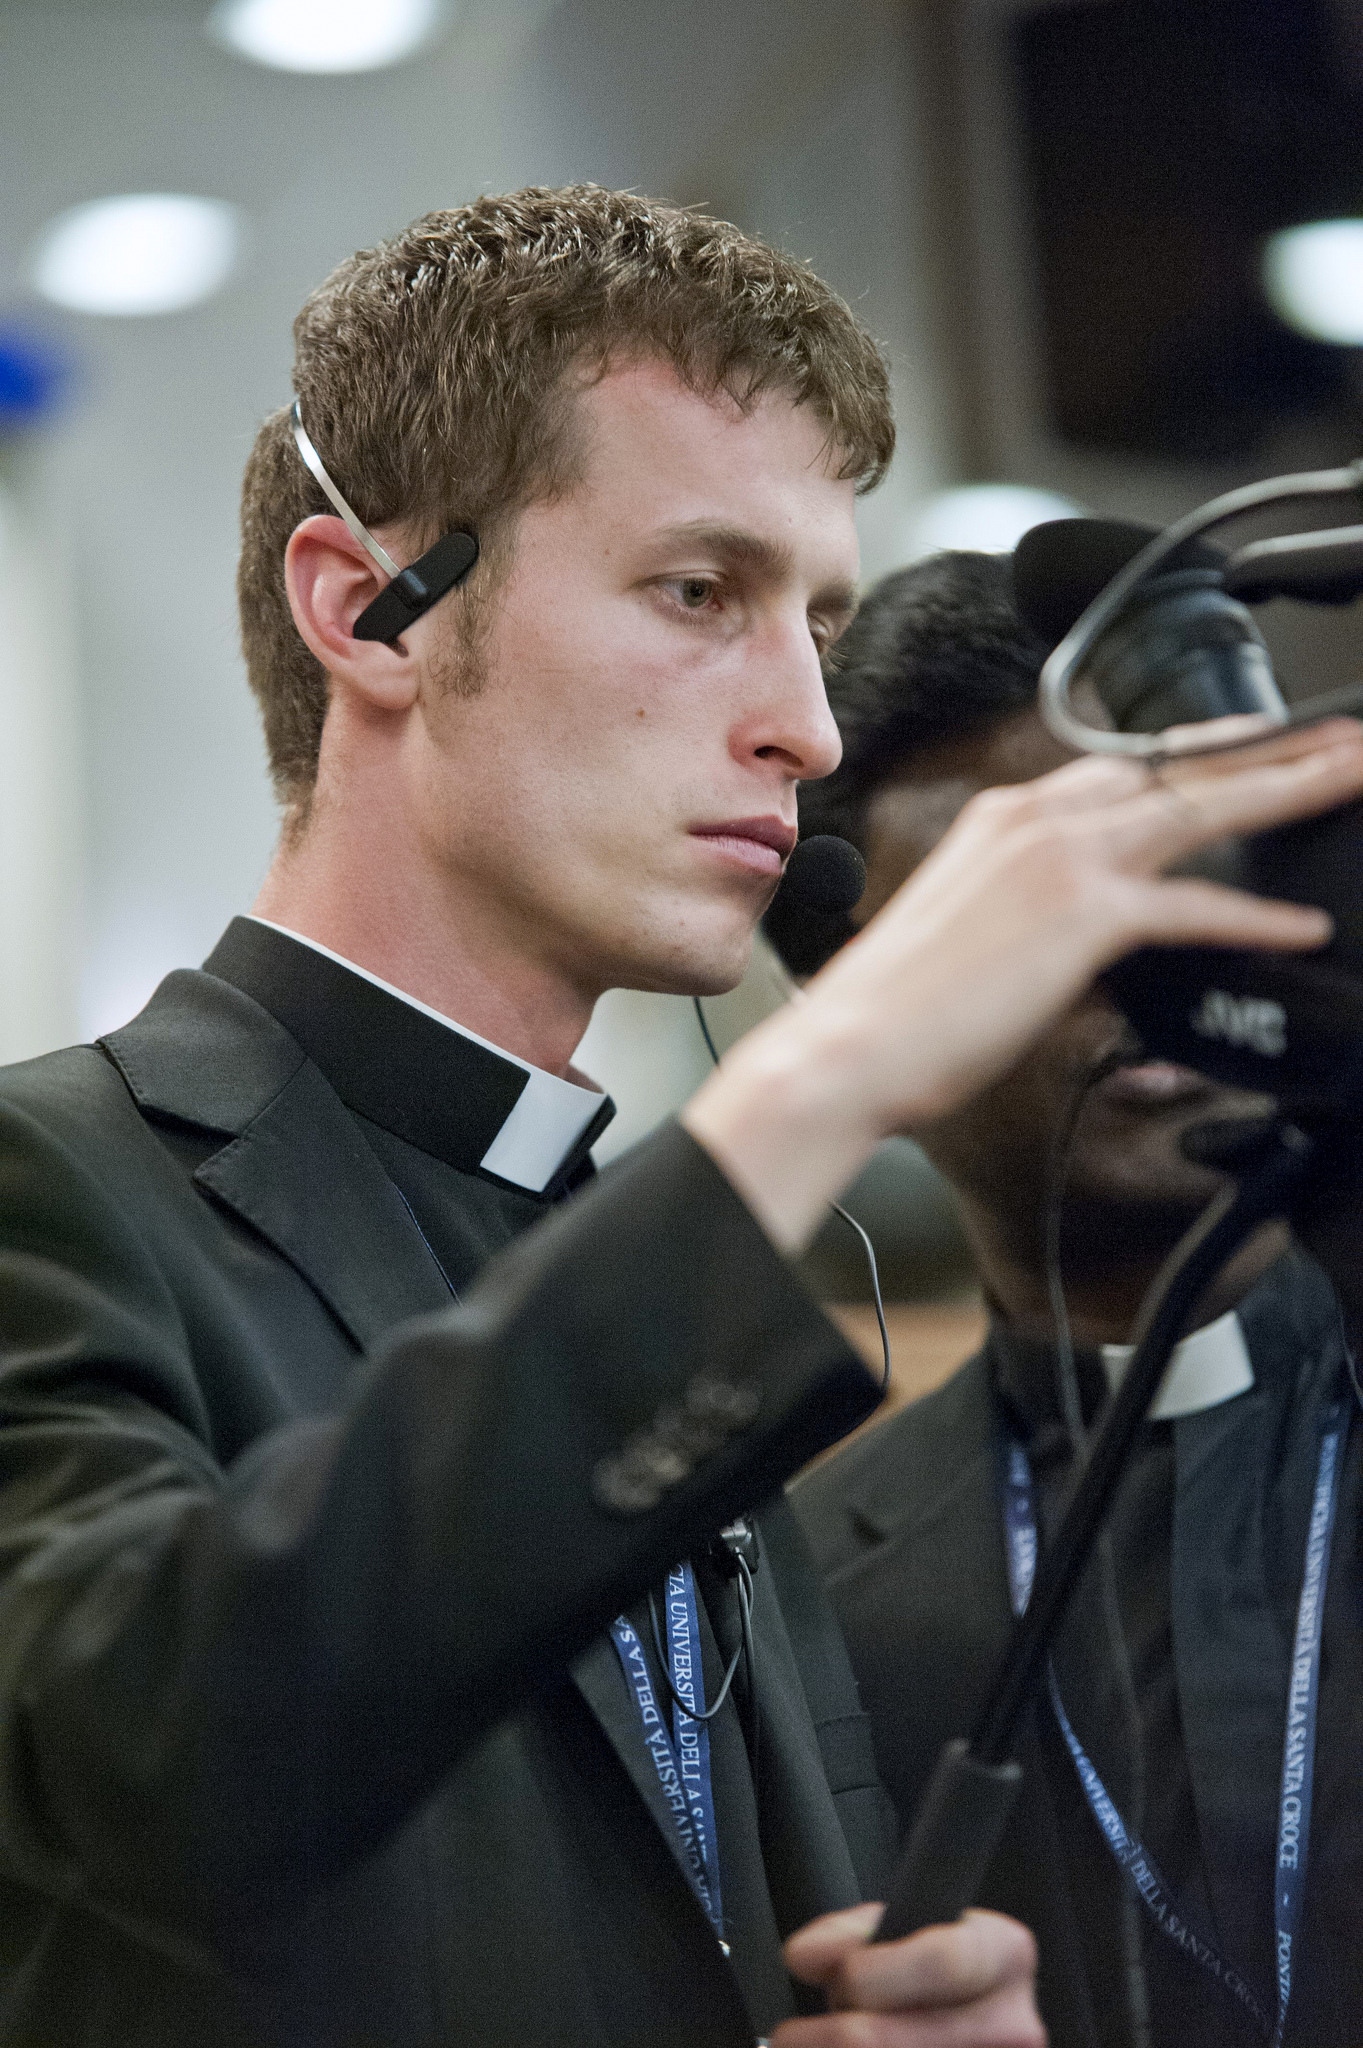 priest_with_video_camera.jpg